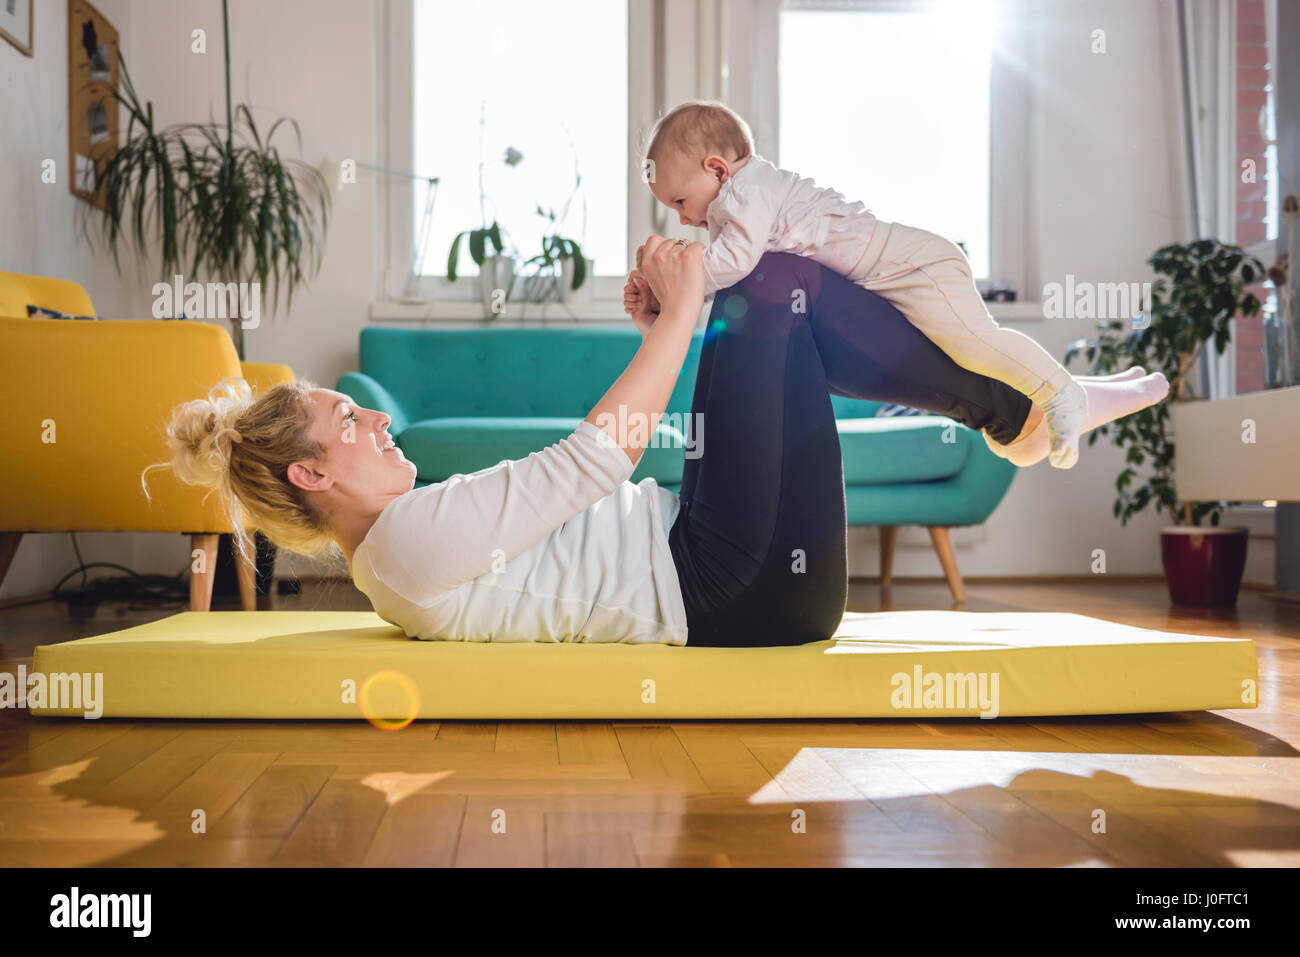 Mother Exercise With Her Baby on yellow mat At Home - Stock Image